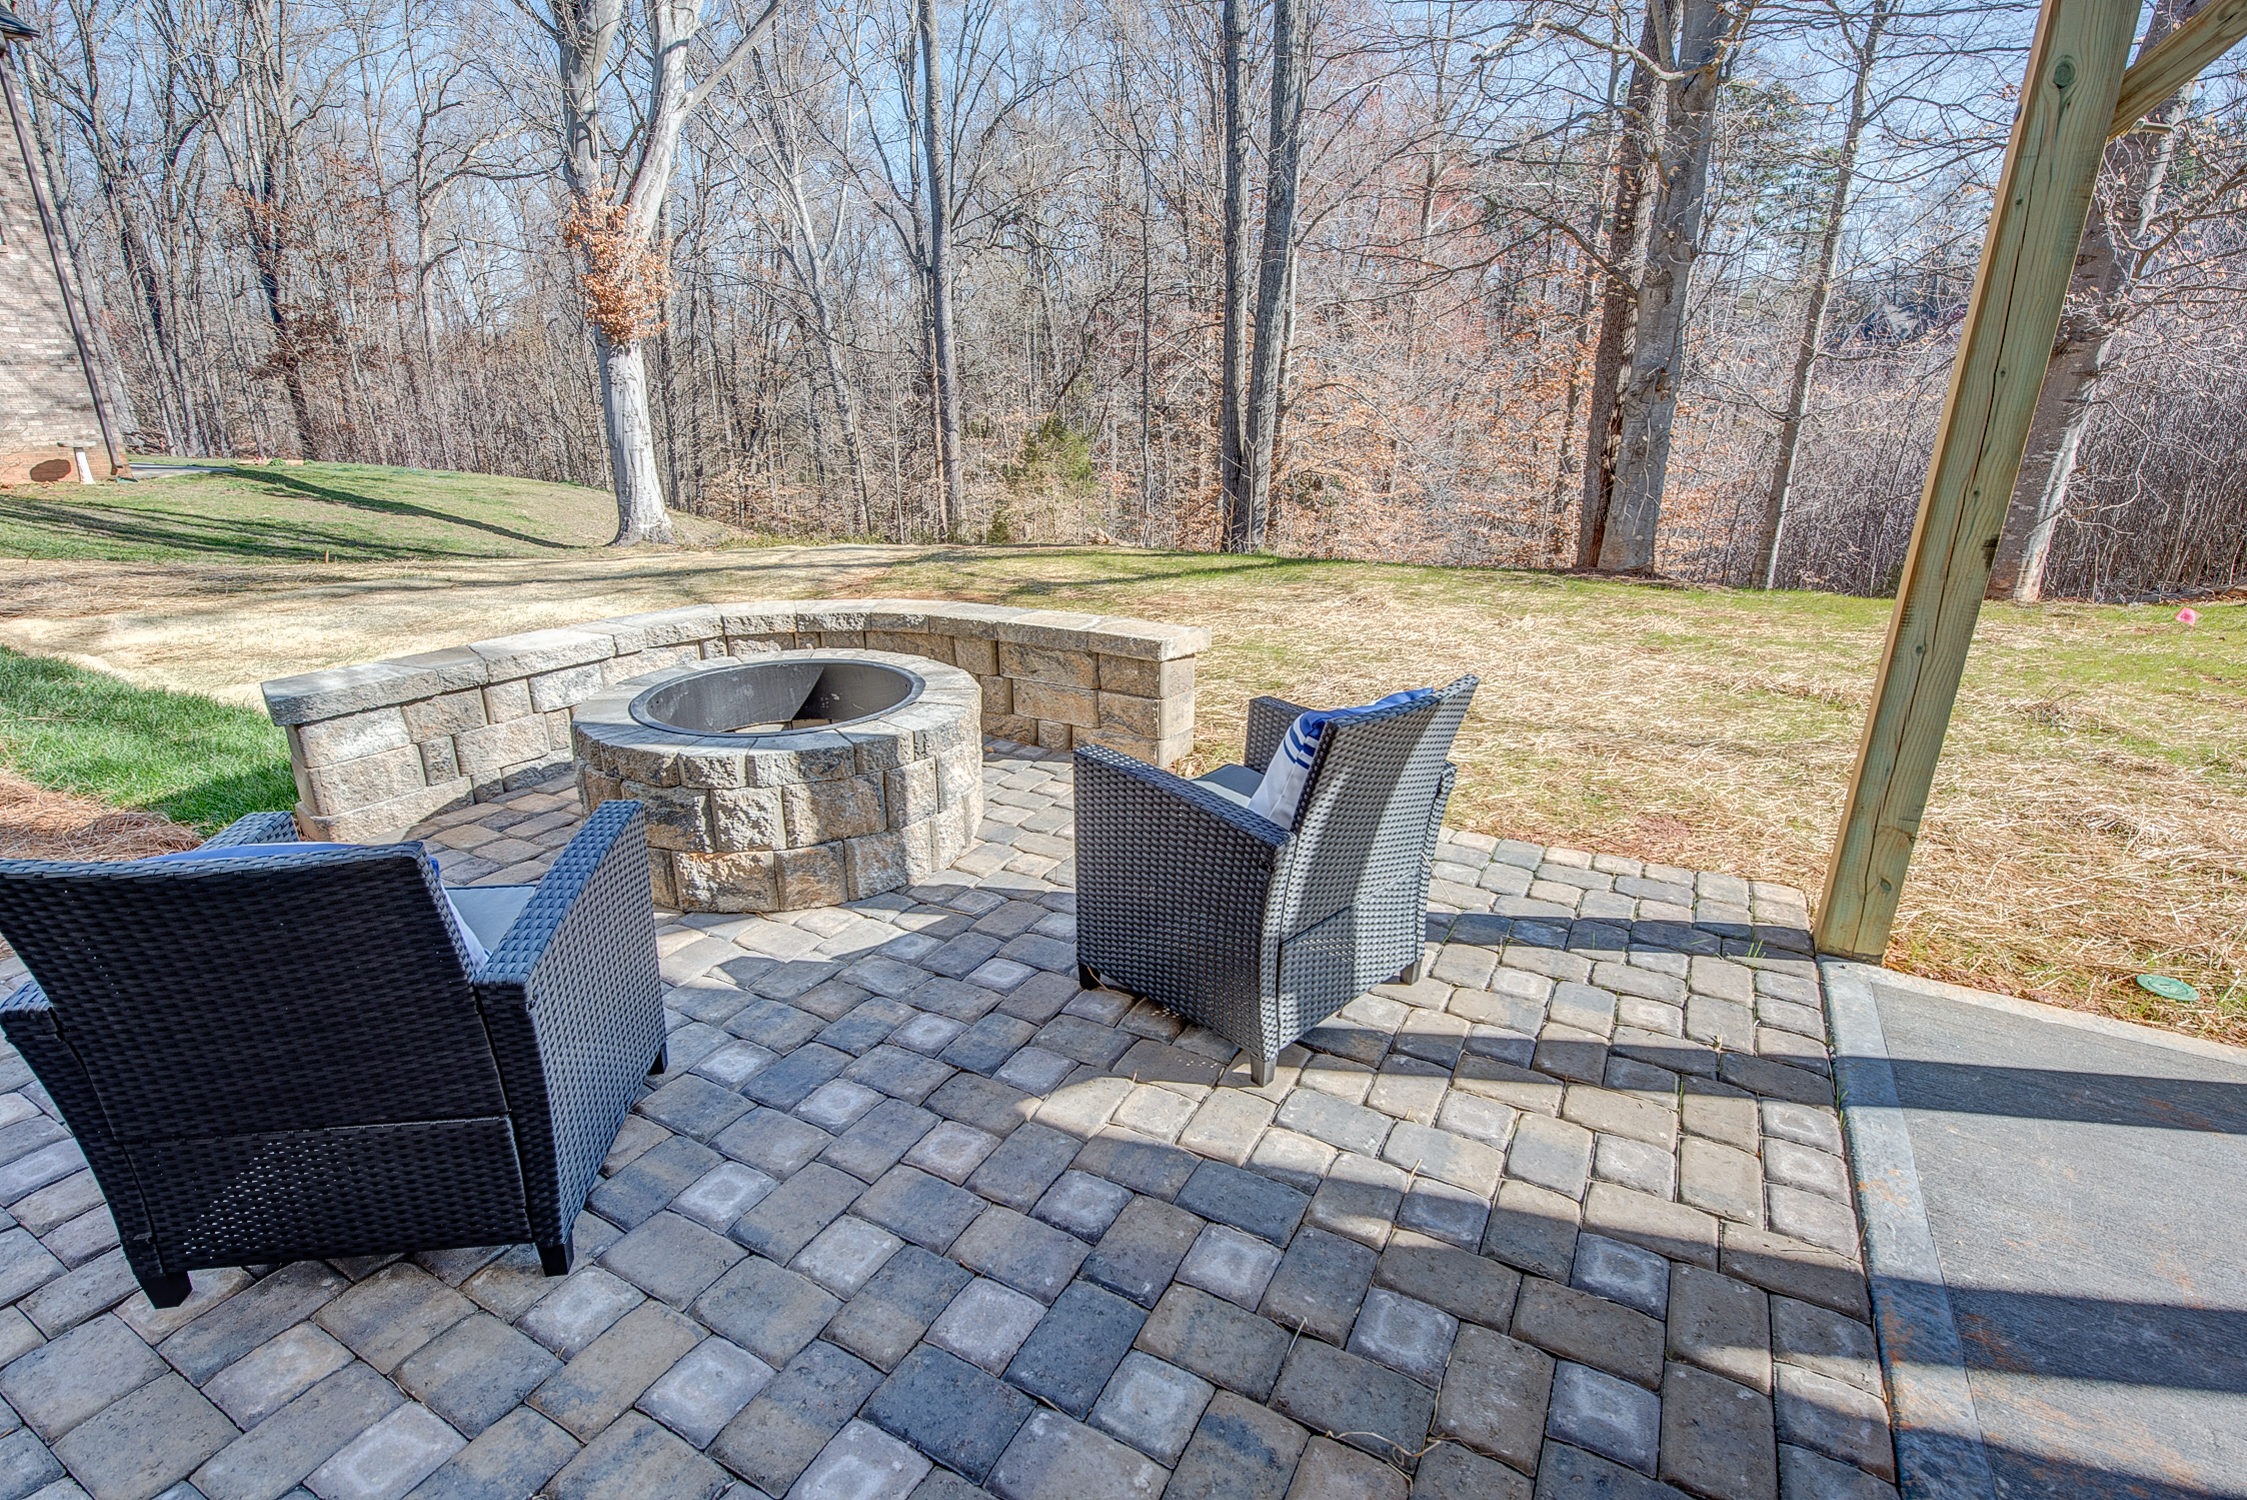 104-bushney-loop-mooresville-print-039-39-patio-firepit-2247x1500-300dpi_33628707221_o.jpg